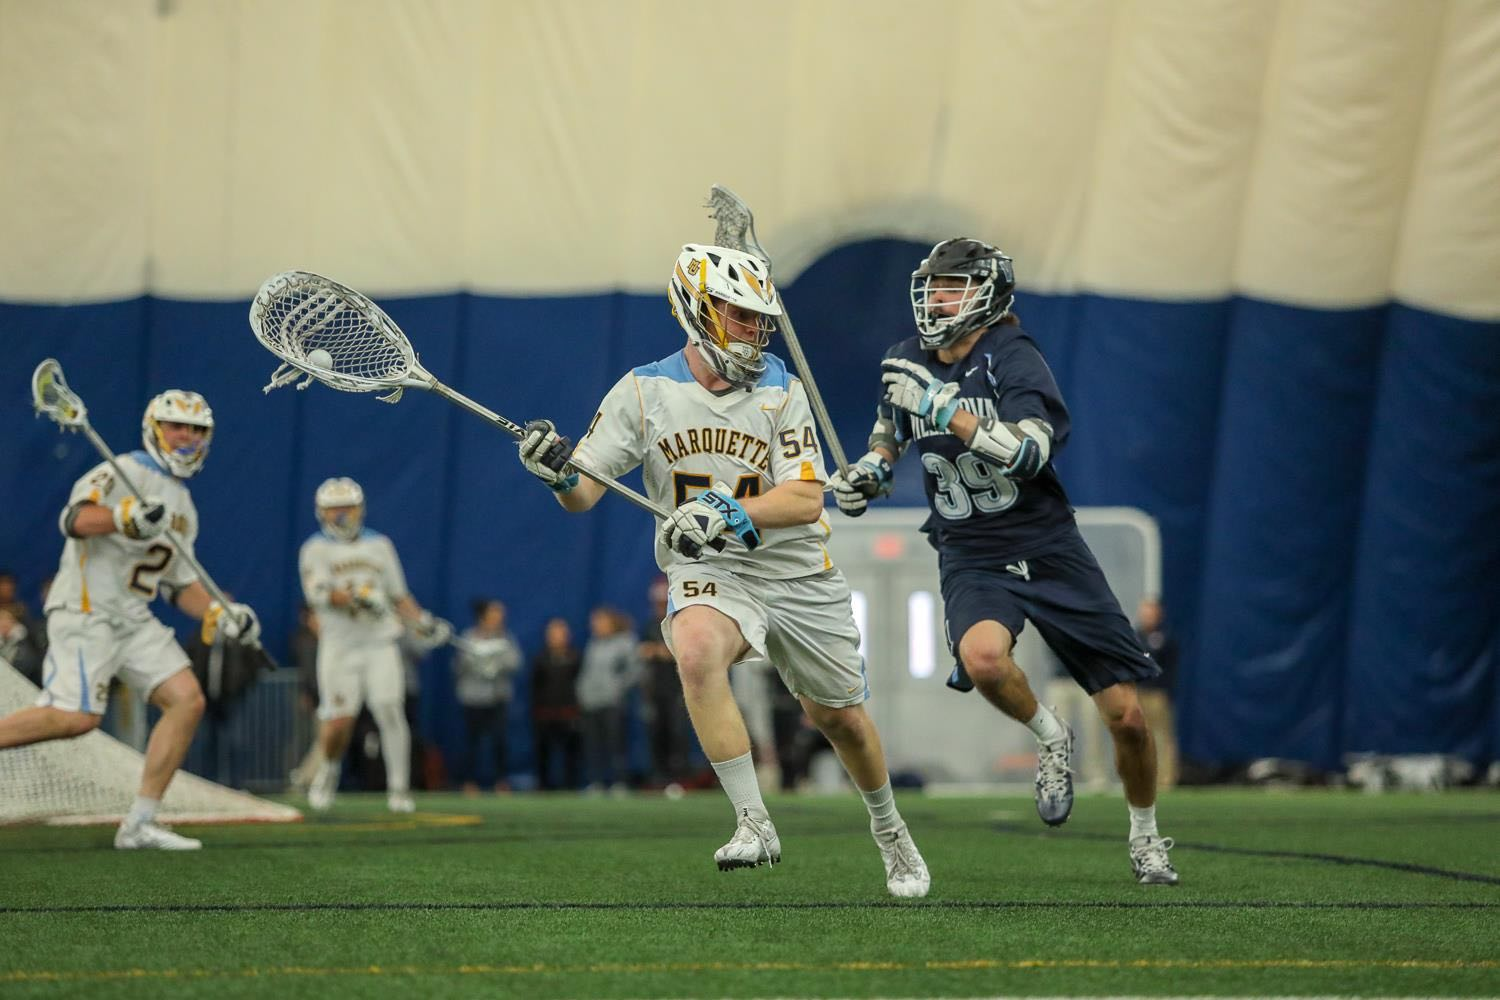 Senior goalie Cole Blazer made 14 saves in a 7-4 loss to Denver last Saturday. Marquette will look to win the BIG EAST Tournament for the third straight season (Photo courtesy: Marquette Athletics).